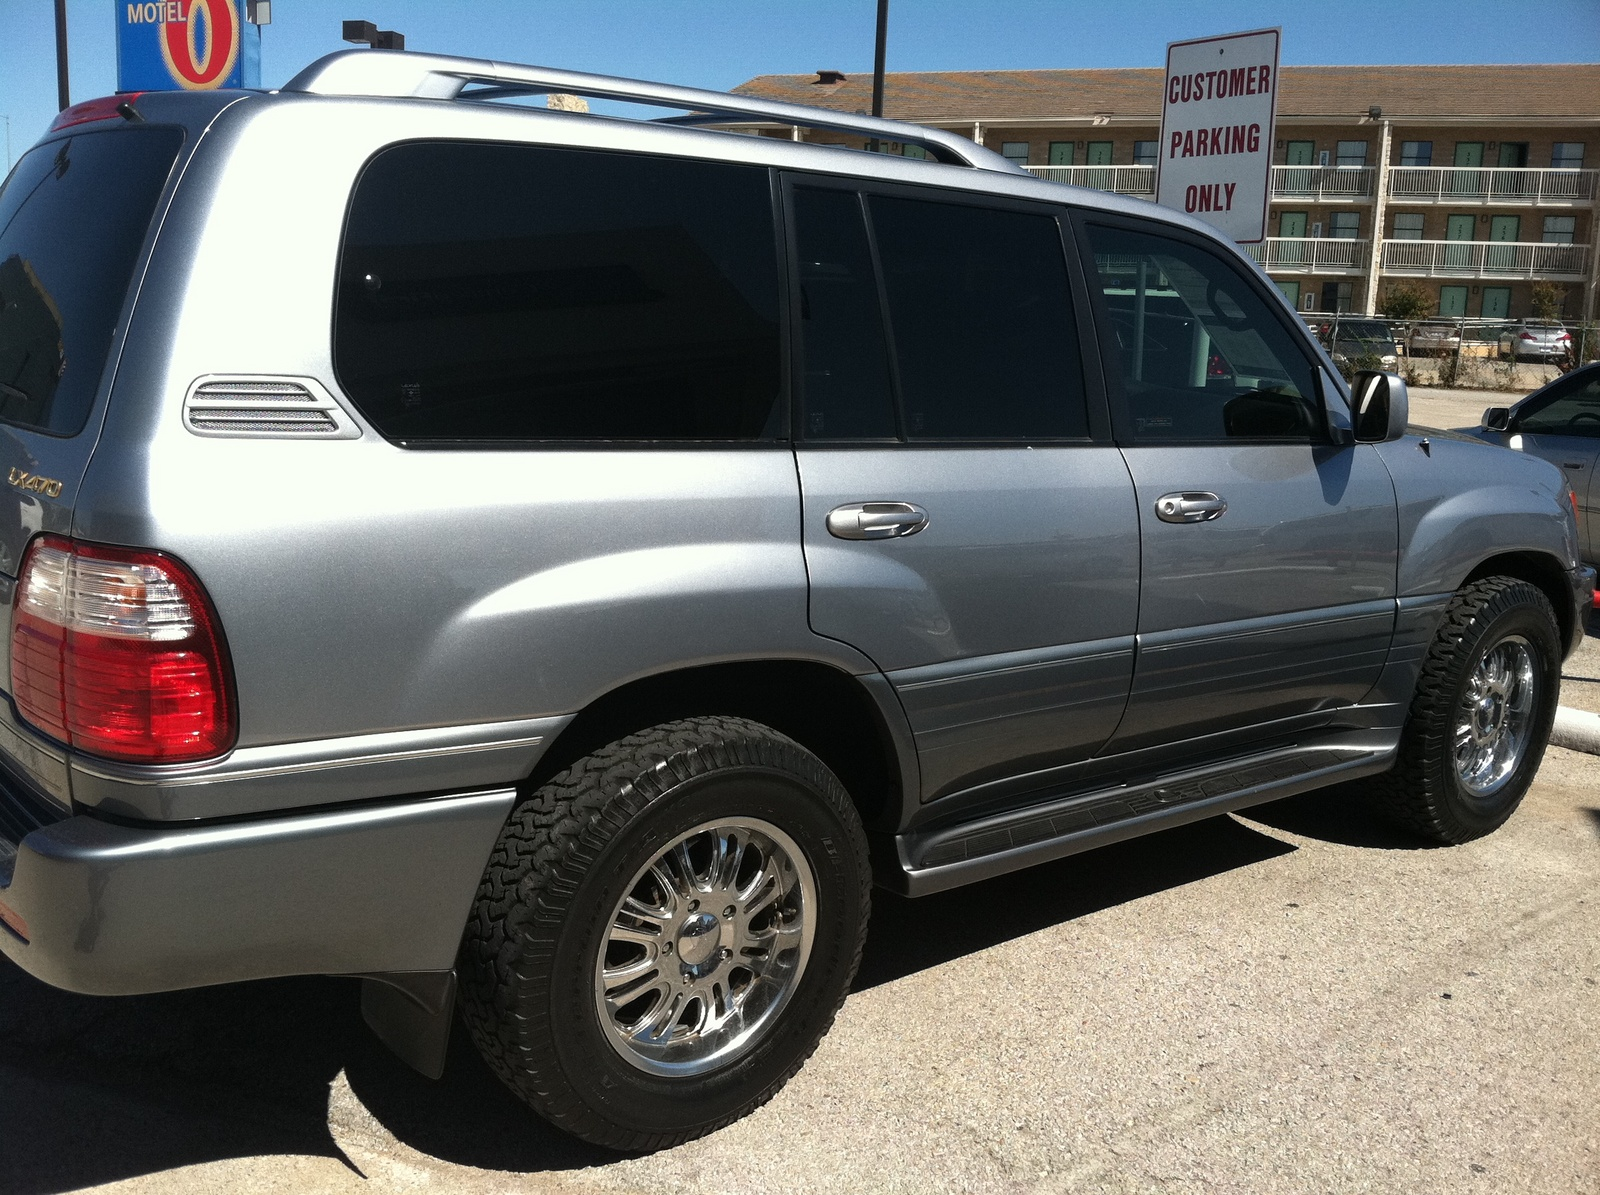 Picture of 2004 Lexus LX 470 4 Dr STD 4WD SUV